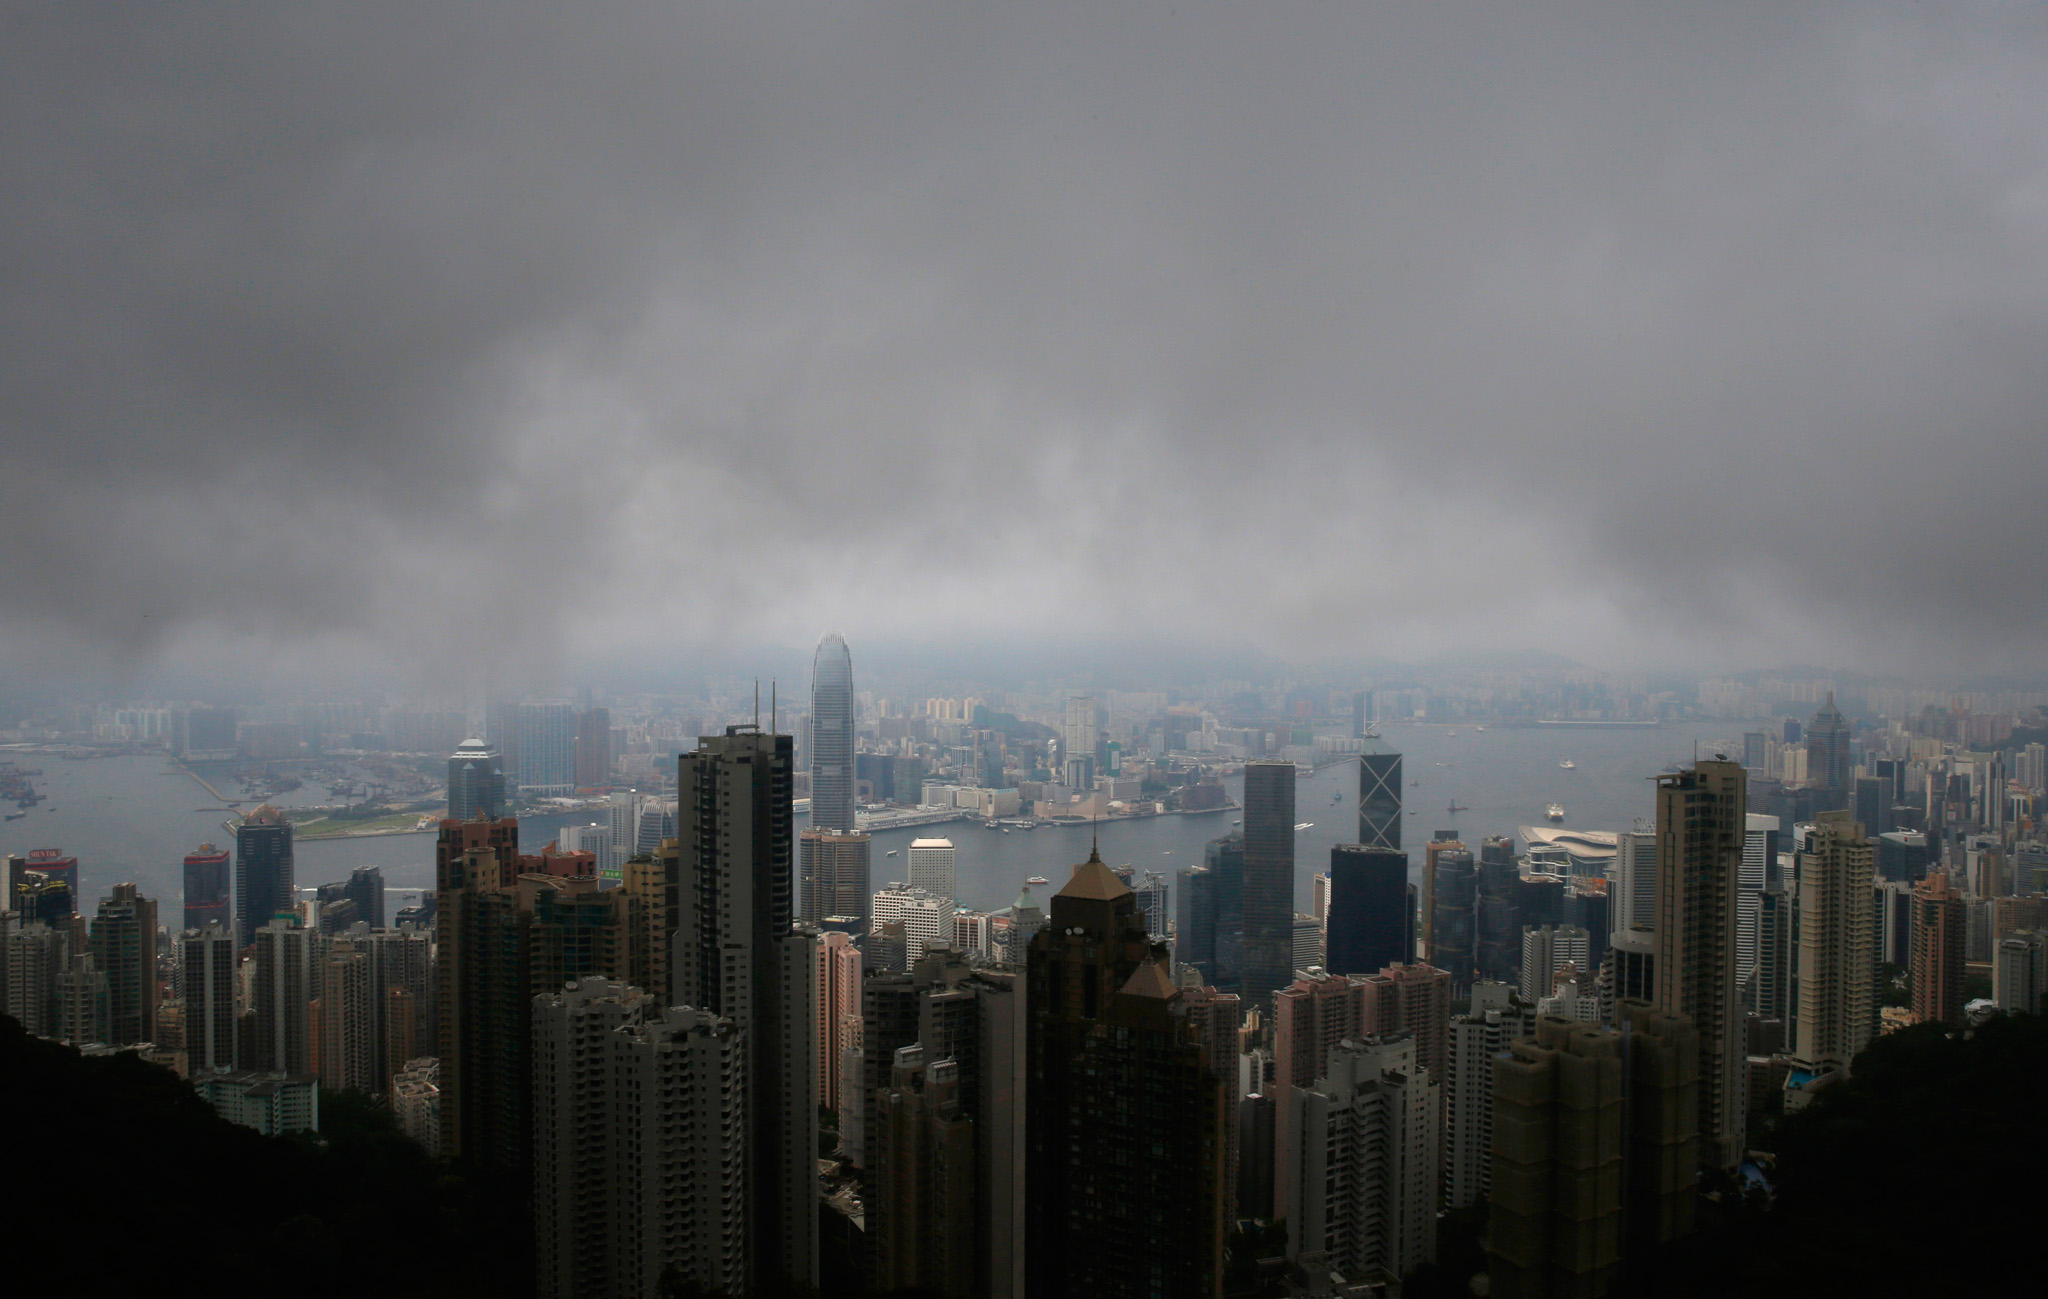 Rain clouds hang over Central in Hong Kong, Thursday, July 24, 2014. As activists vow to shut down Hong Kongís financial district in protest at Chinaís attempt to hobble democratic elections in the city, businessman Bernard Chan is preparing for the worst. Chanís investment company has added backup phone lines, bought extra laptops and stockpiled instant noodles in case its headquarters downtown is caught in the middle of the protest. (AP Photo/Kin Cheung)